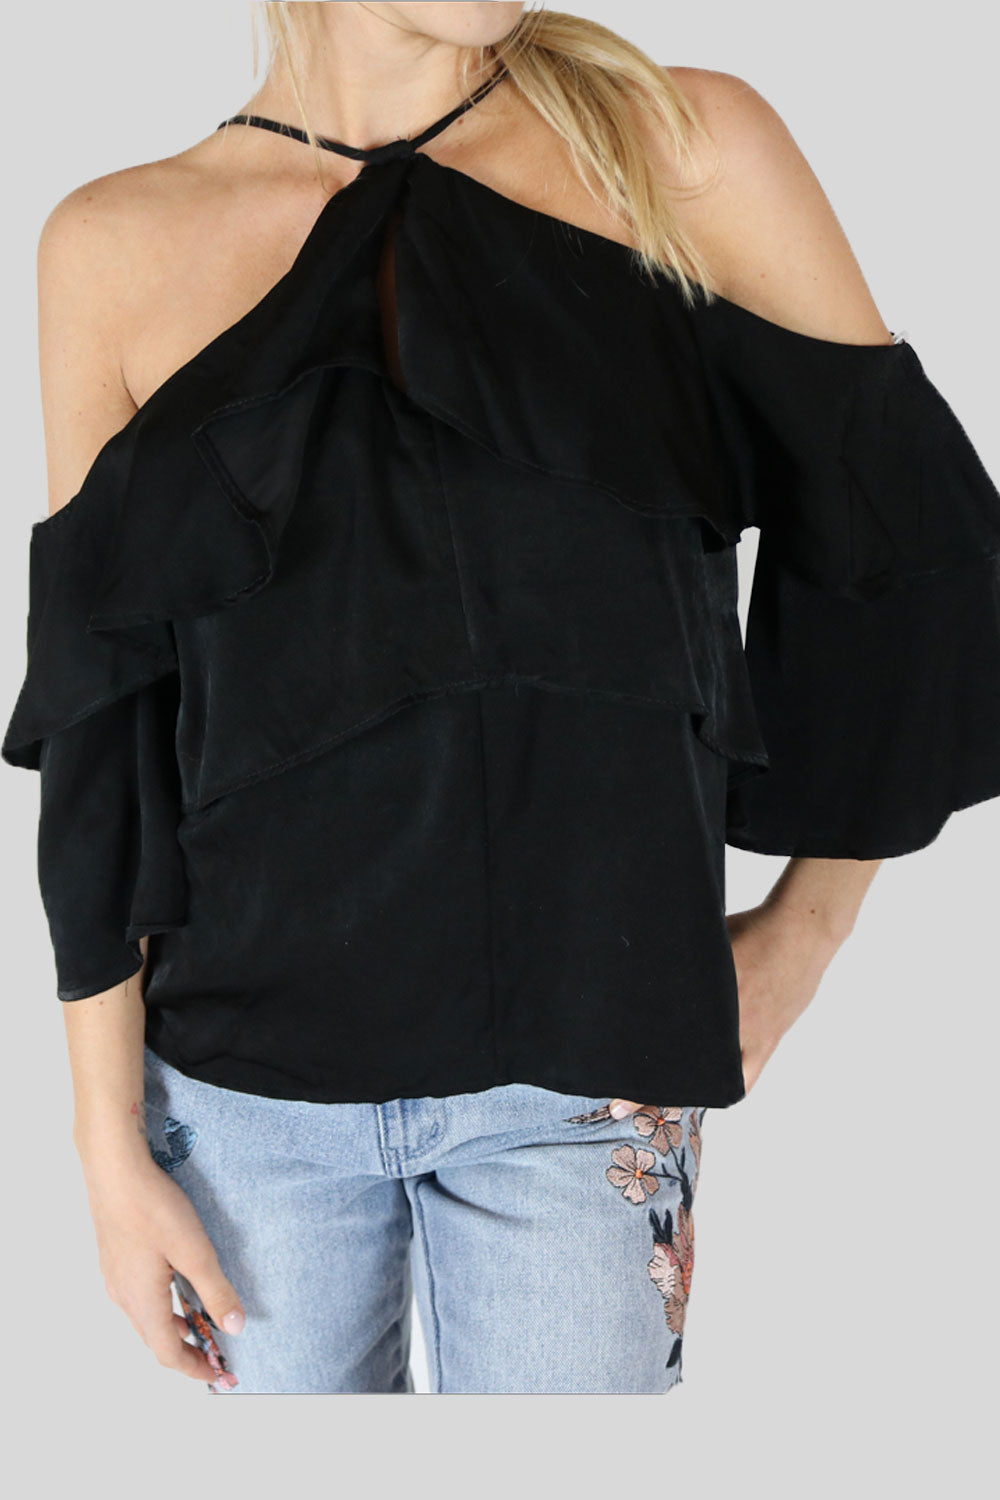 Black Ruffle Shoulder Shirt